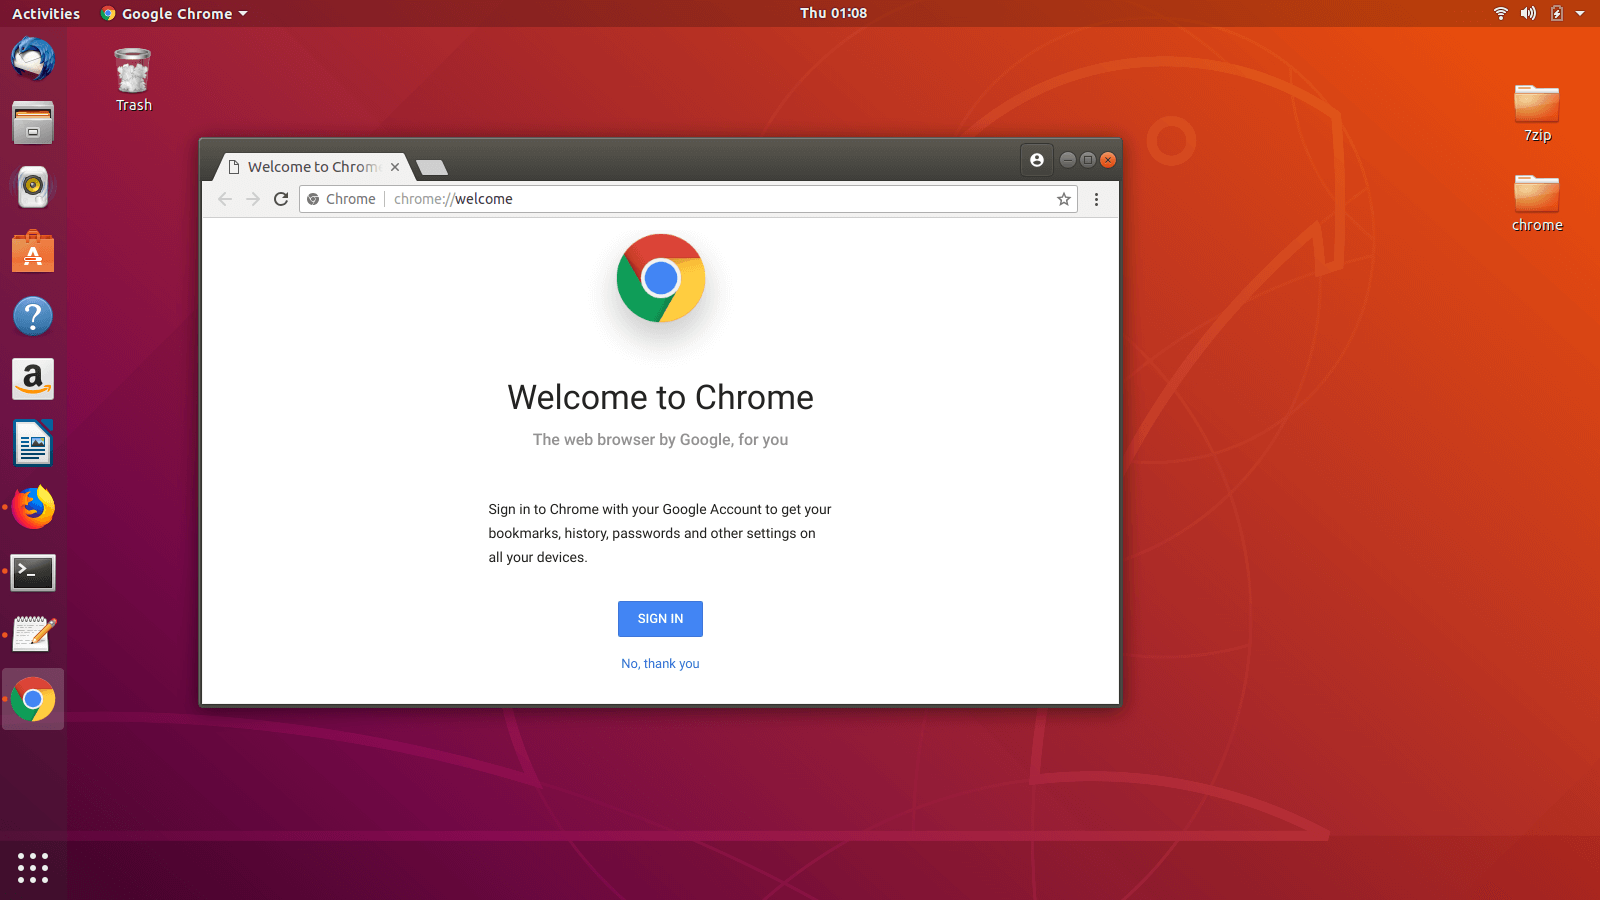 How To Install Google Chrome In Ubuntu 18 04 1 LTS (Bionic Beaver)